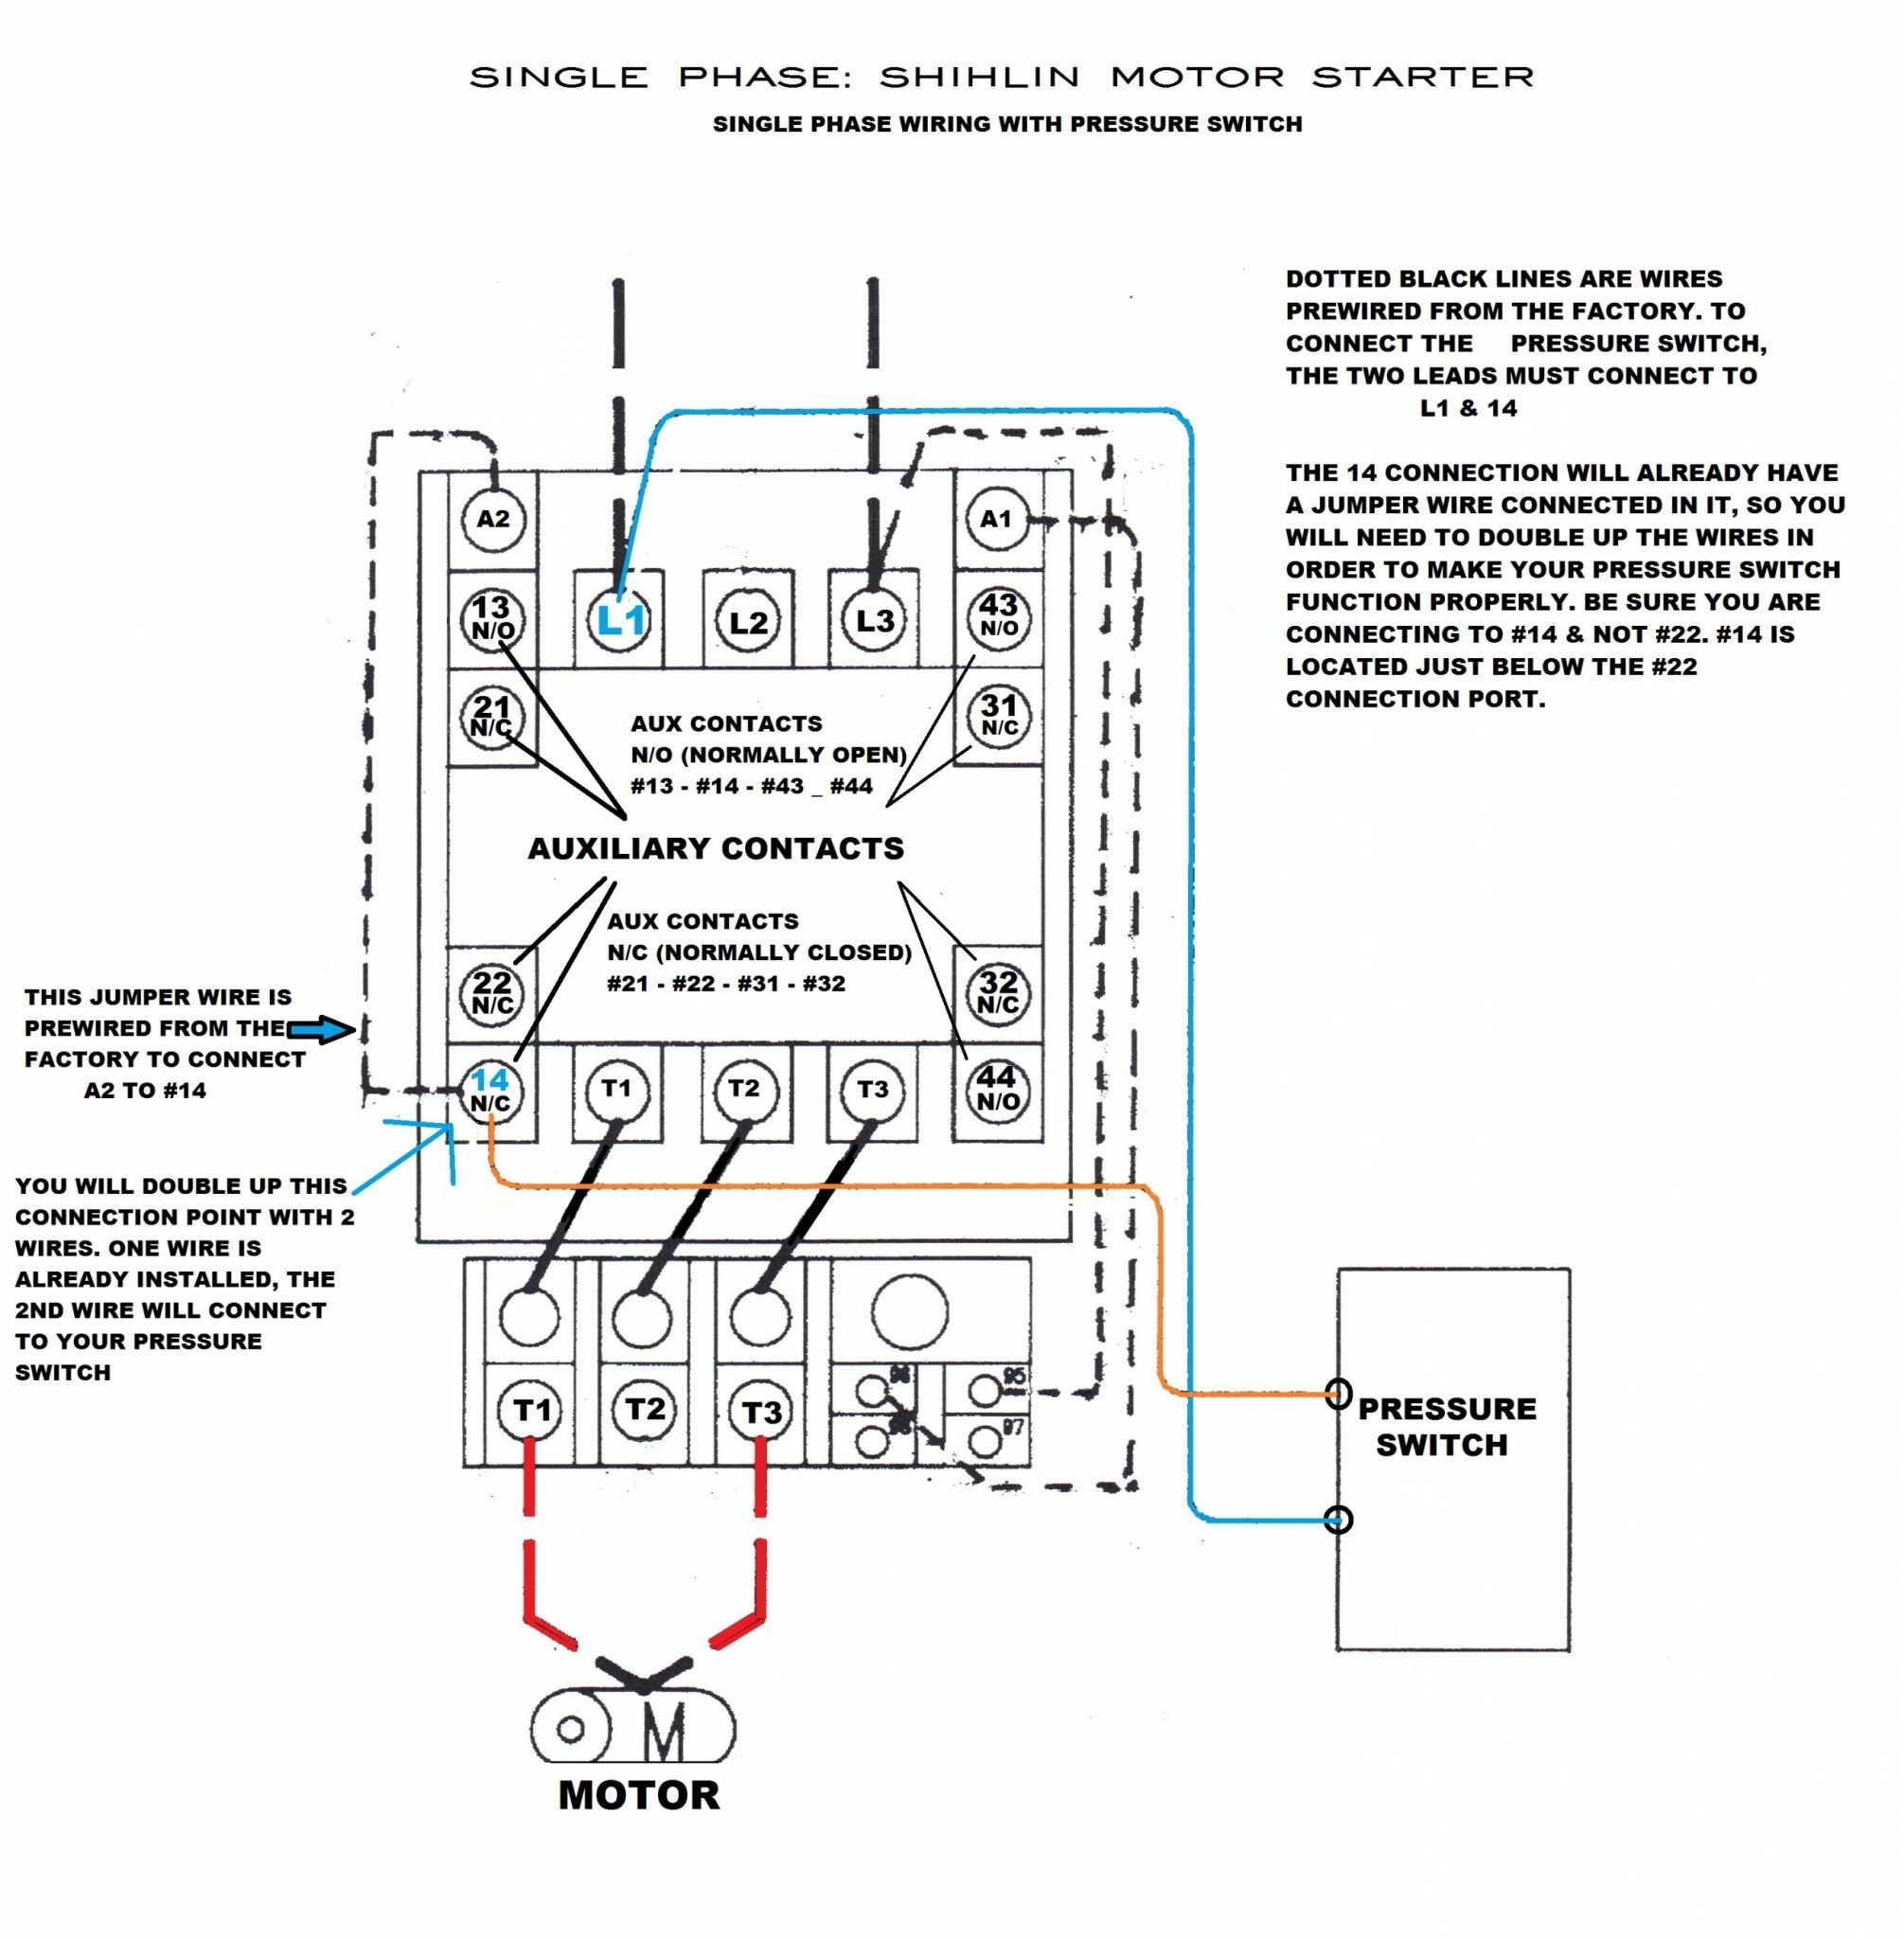 Square D Well Pump Pressure Switch Wiring Diagram | Welcome To Be - Square D Well Pump Pressure Switch Wiring Diagram